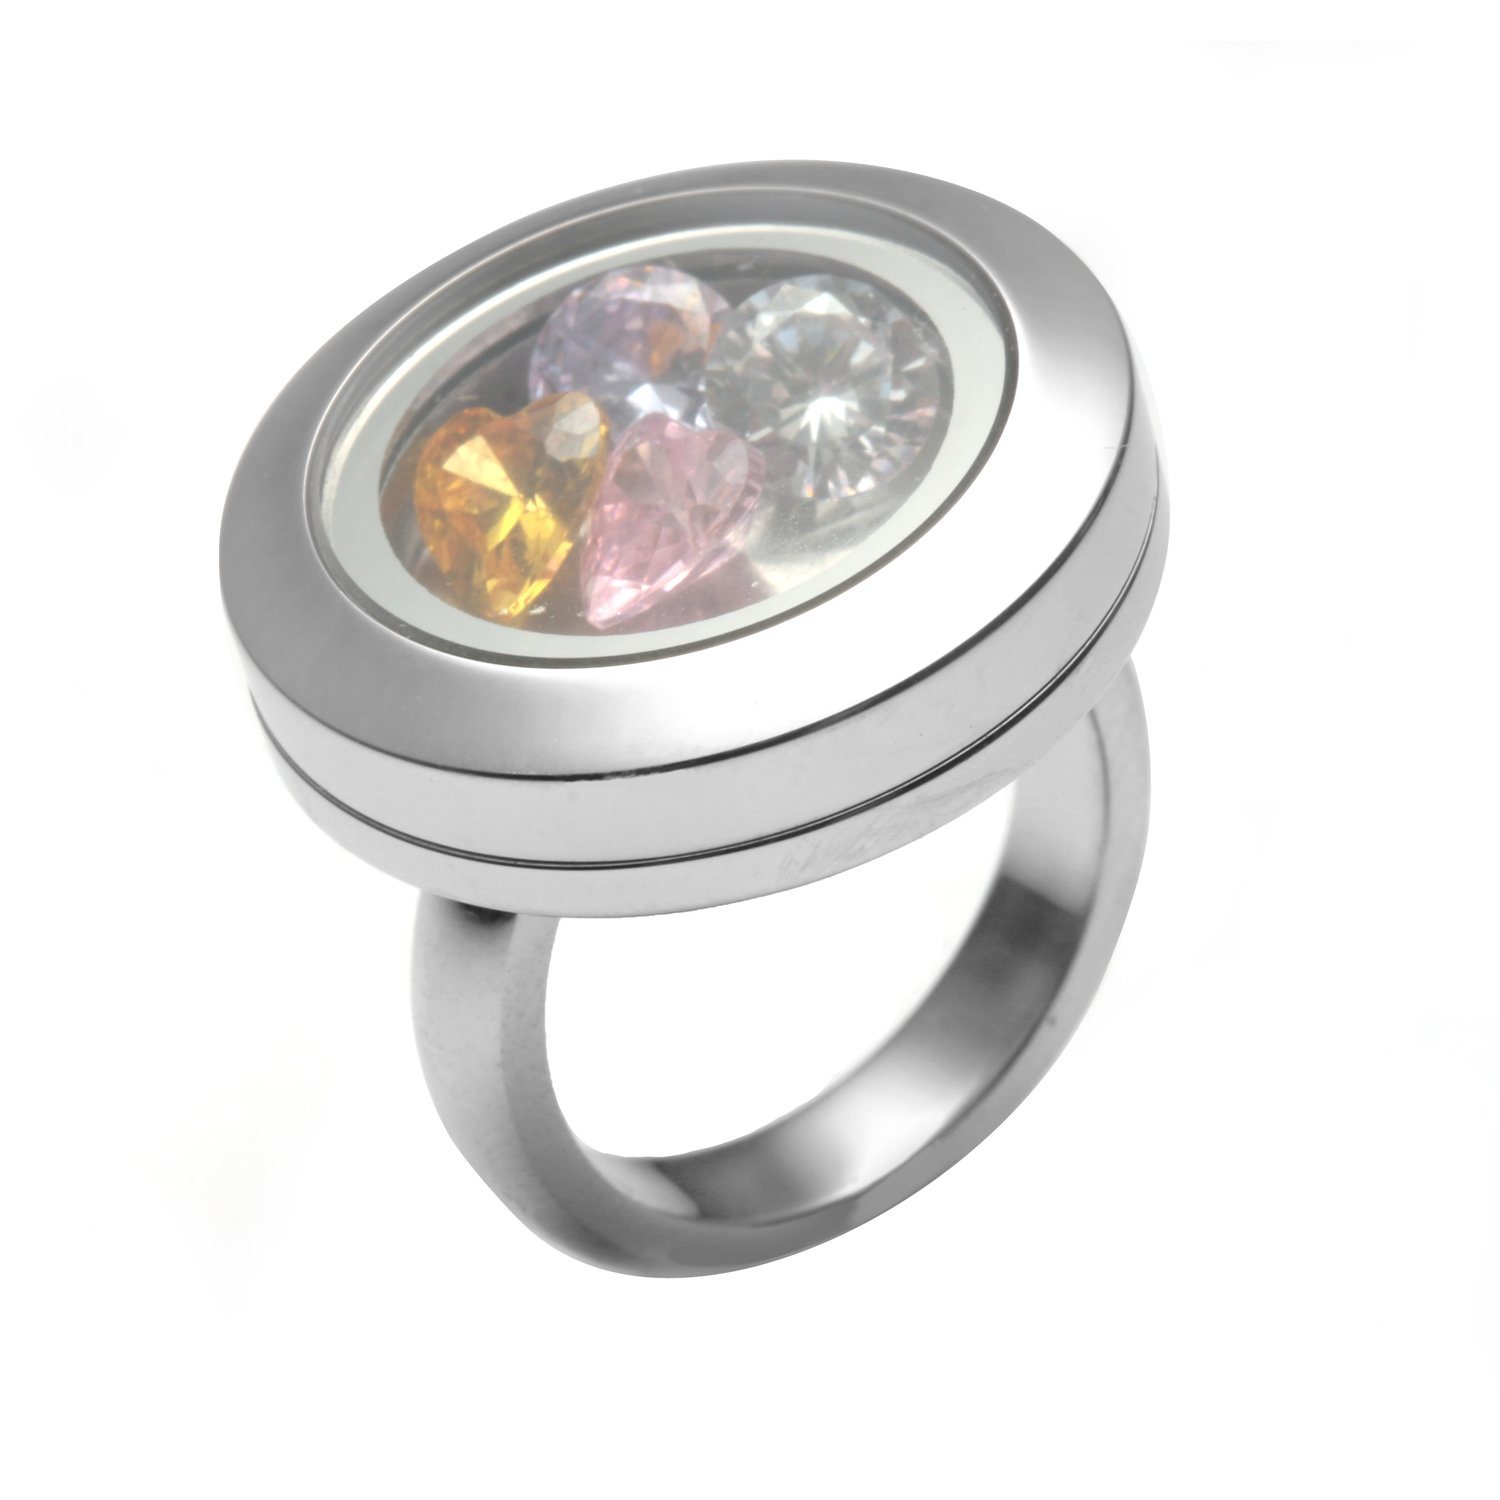 EVERLEAD Latest Open Floating Charm Locket Ring with Crystal (Size 7 (Simple))